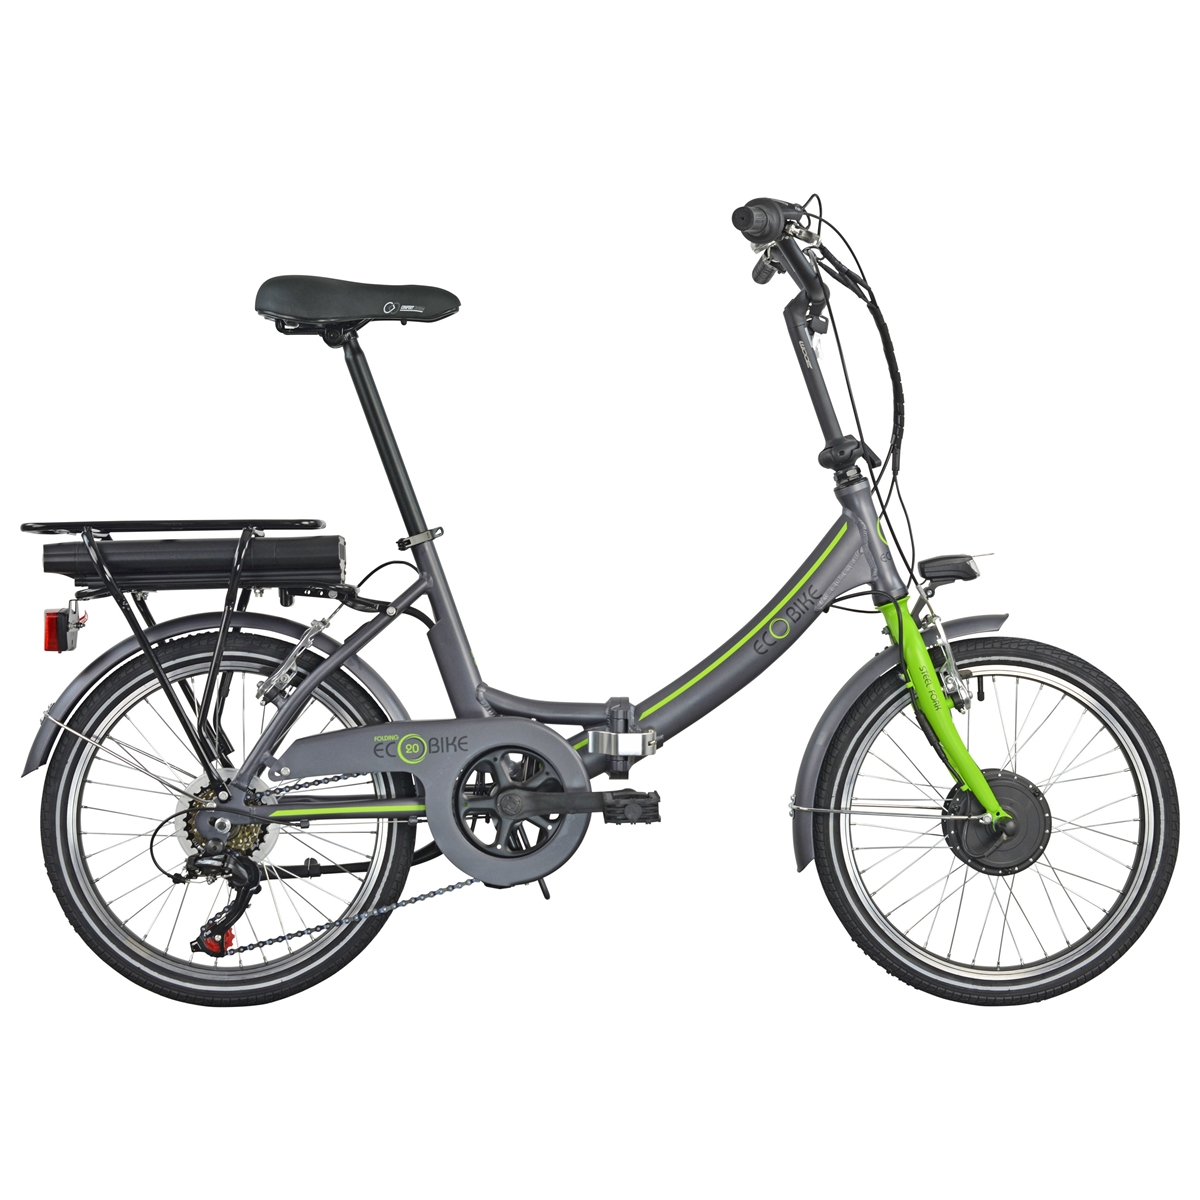 Folding Ecobike 1281 20'' 6s Bafang Front 374Wh Grey/Green 2021